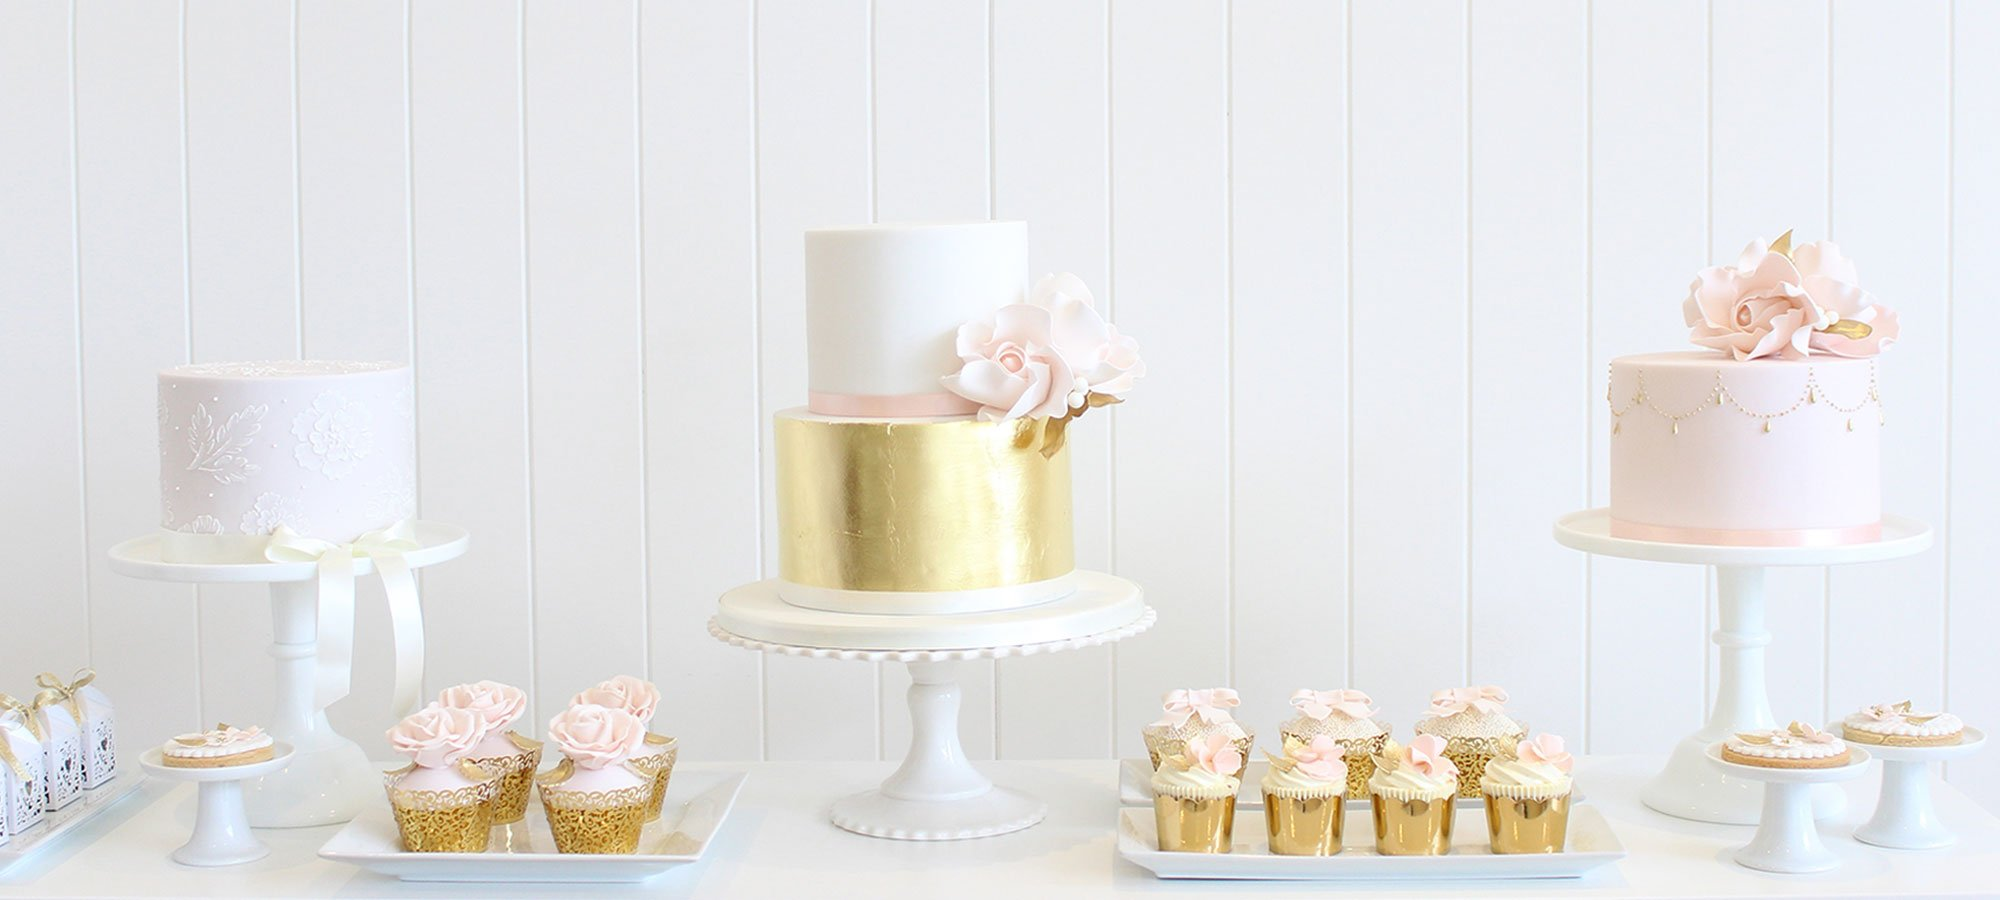 Order Your Favorite Cakes Pastries Bread Online